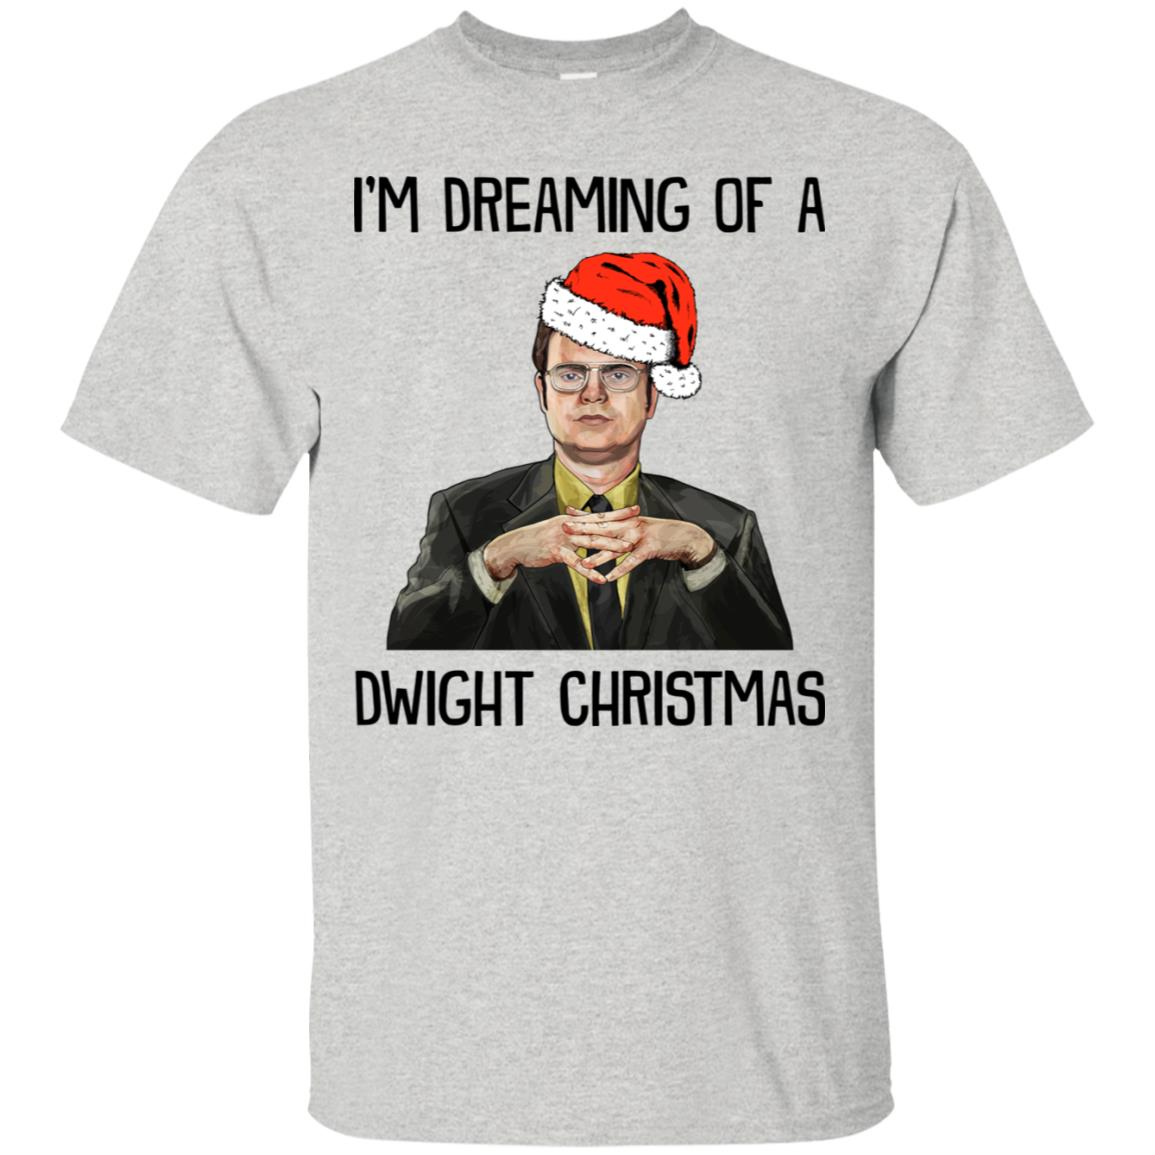 Dwight Christmas.Dwight Schrute I M Dreaming Of A Dwight Christmas Sweatshirt Ls Hoodie